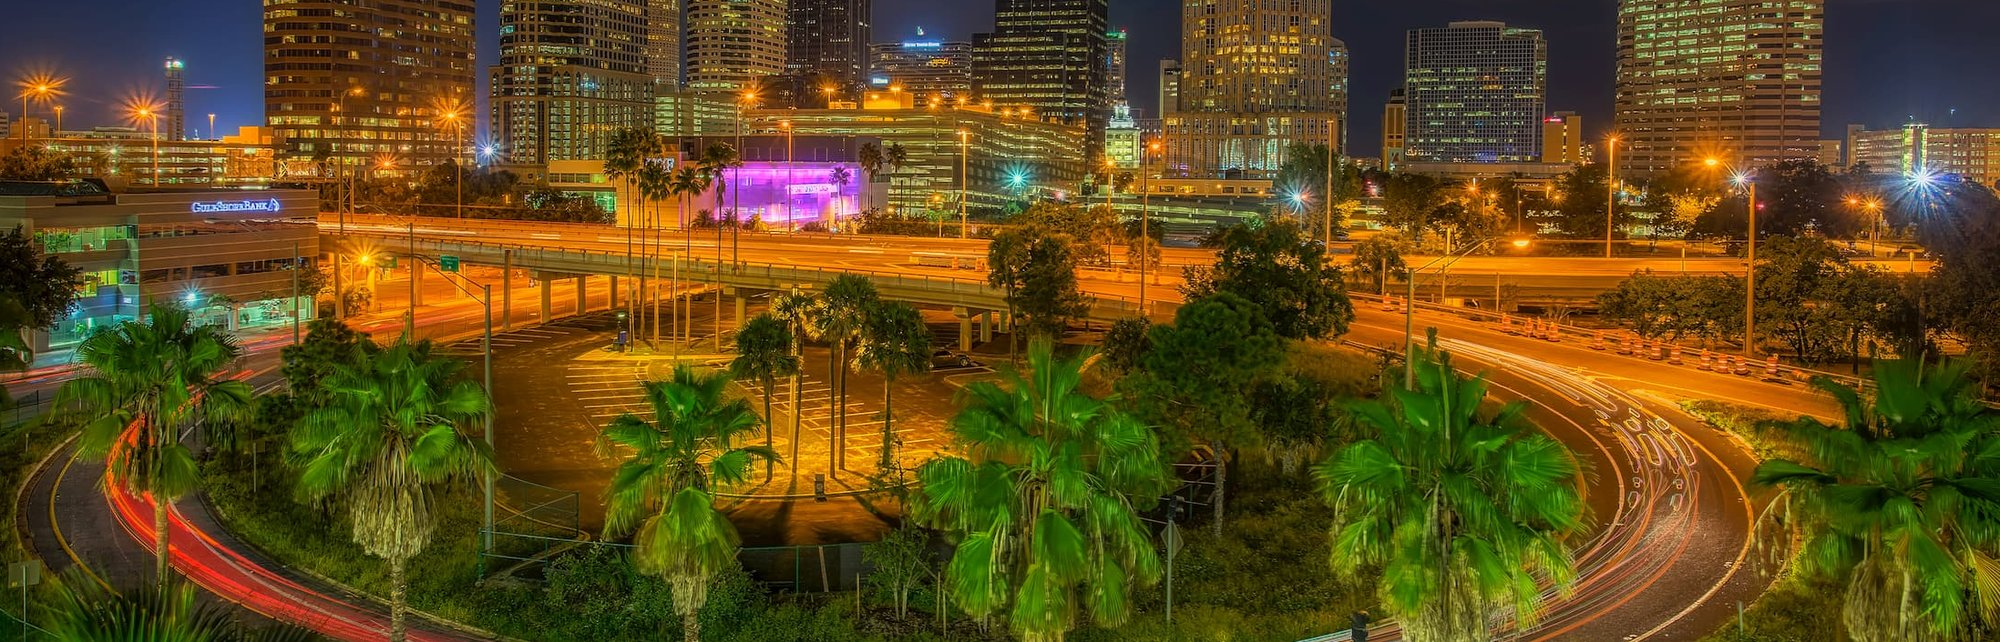 Around Tampa Night Merged